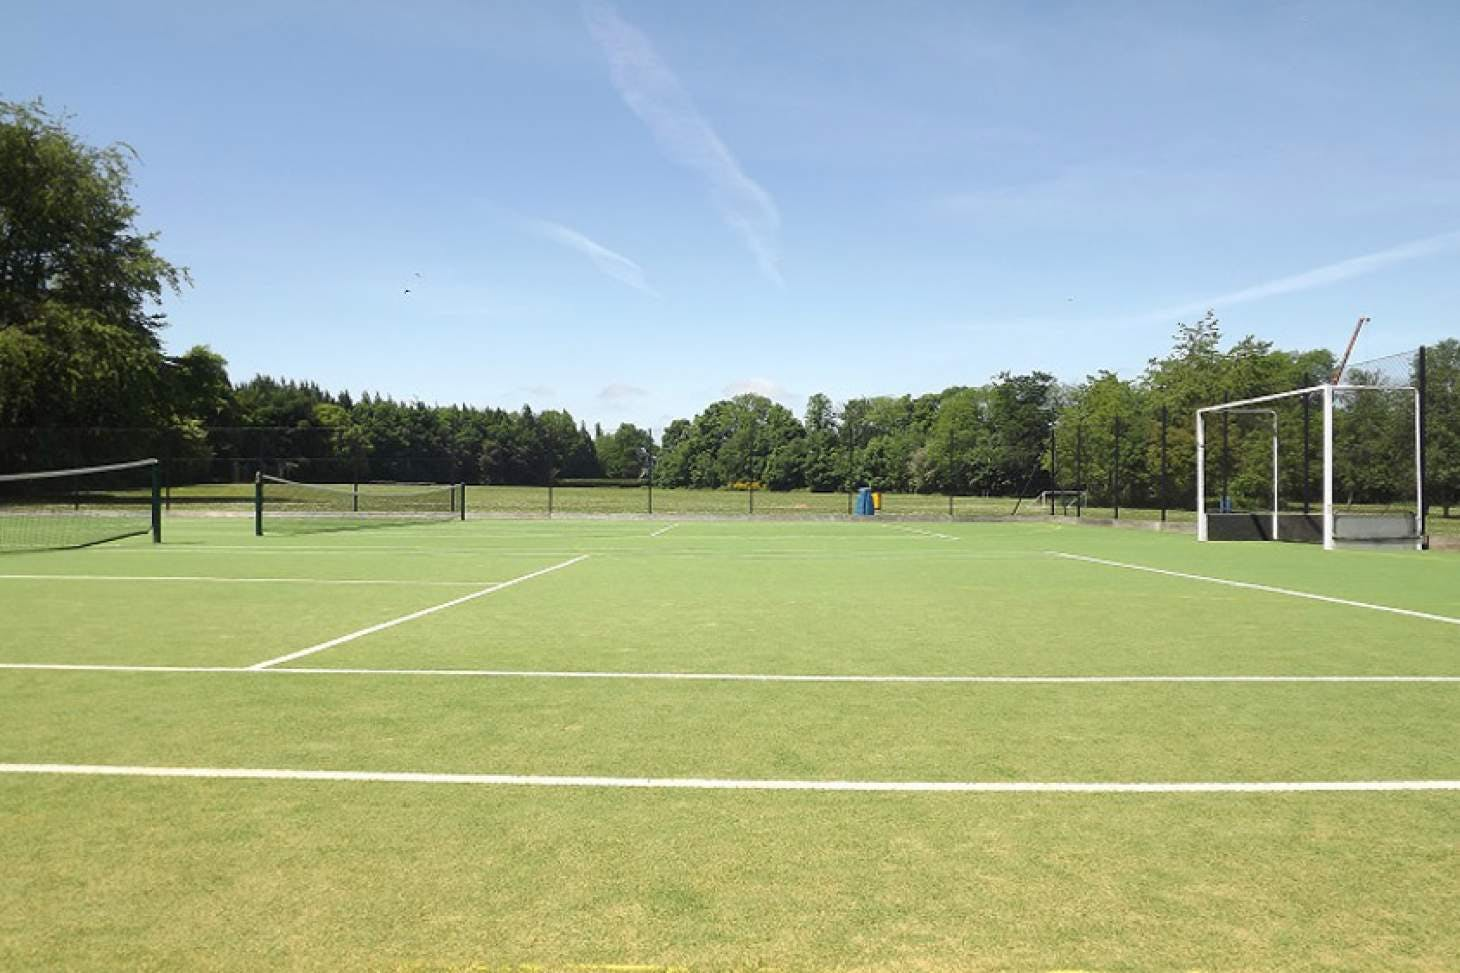 Dr Challoner's High School Outdoor | Astroturf hockey pitch